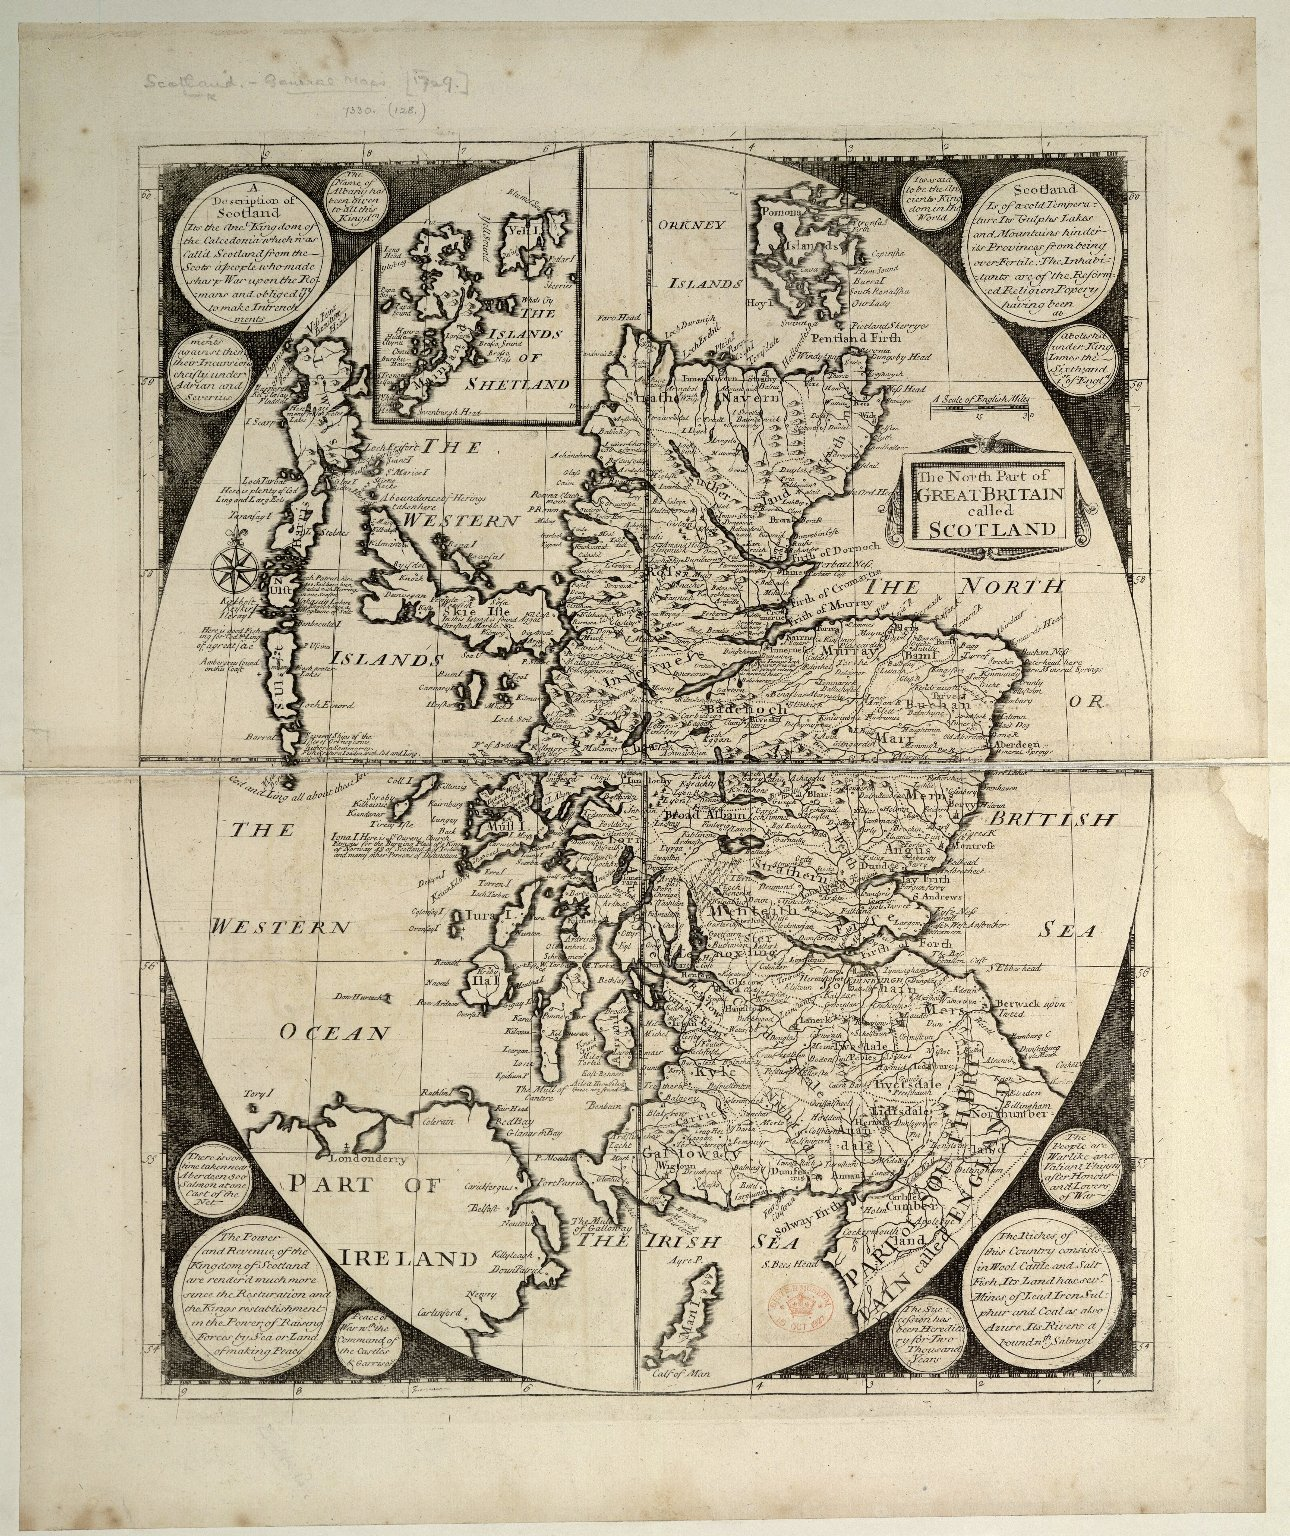 The North Part of Great Britain called Scotland [1 of 1]